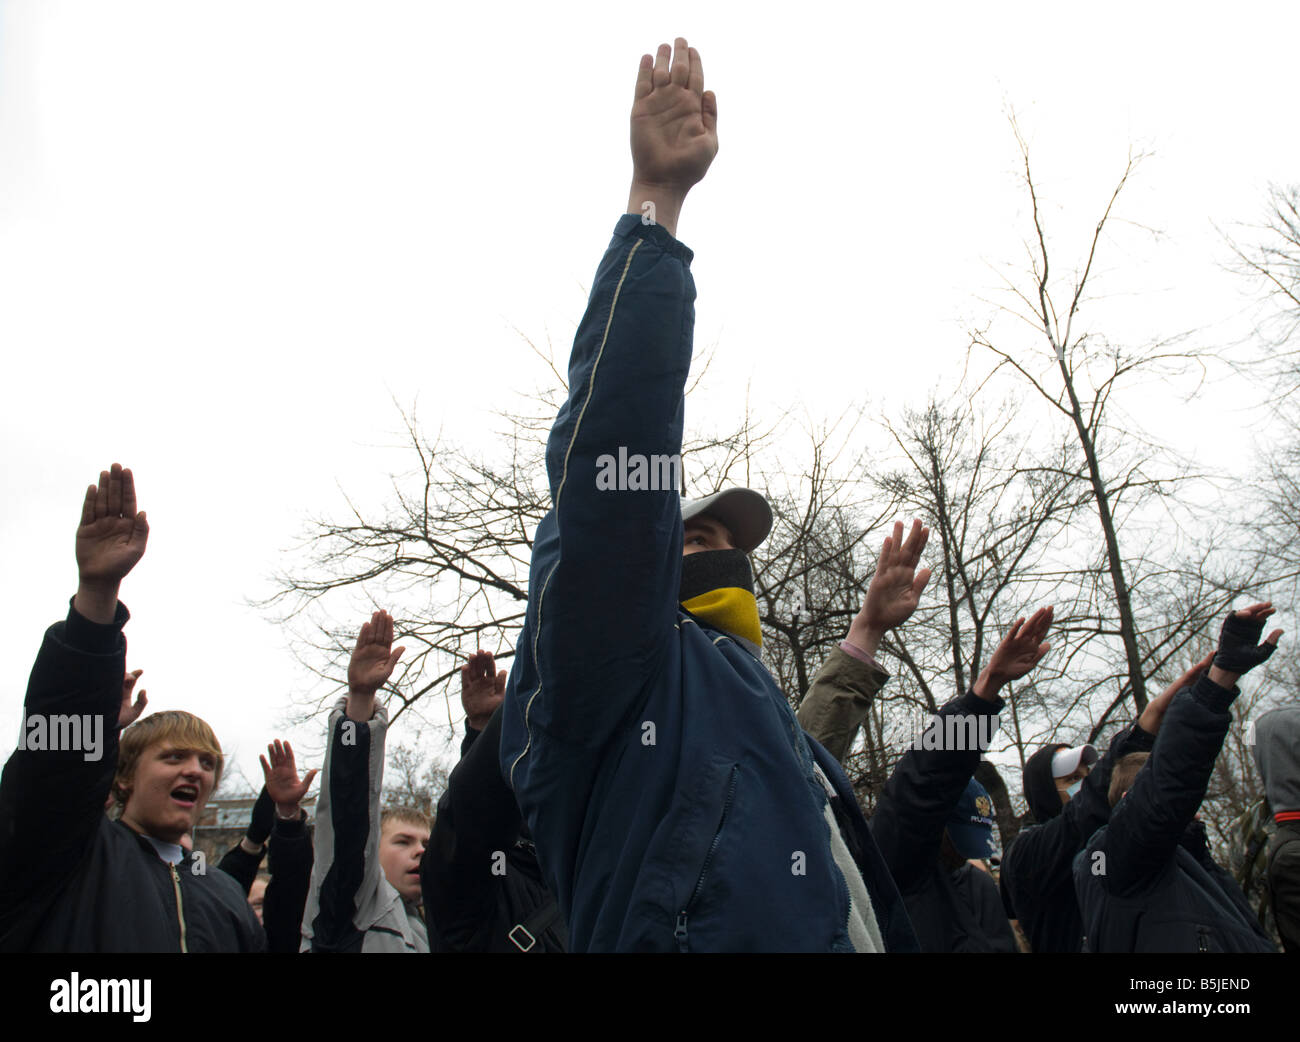 Ultra-nationalist activists making Nazi salutes during their rally in central Petersburg on November 4. - Stock Image